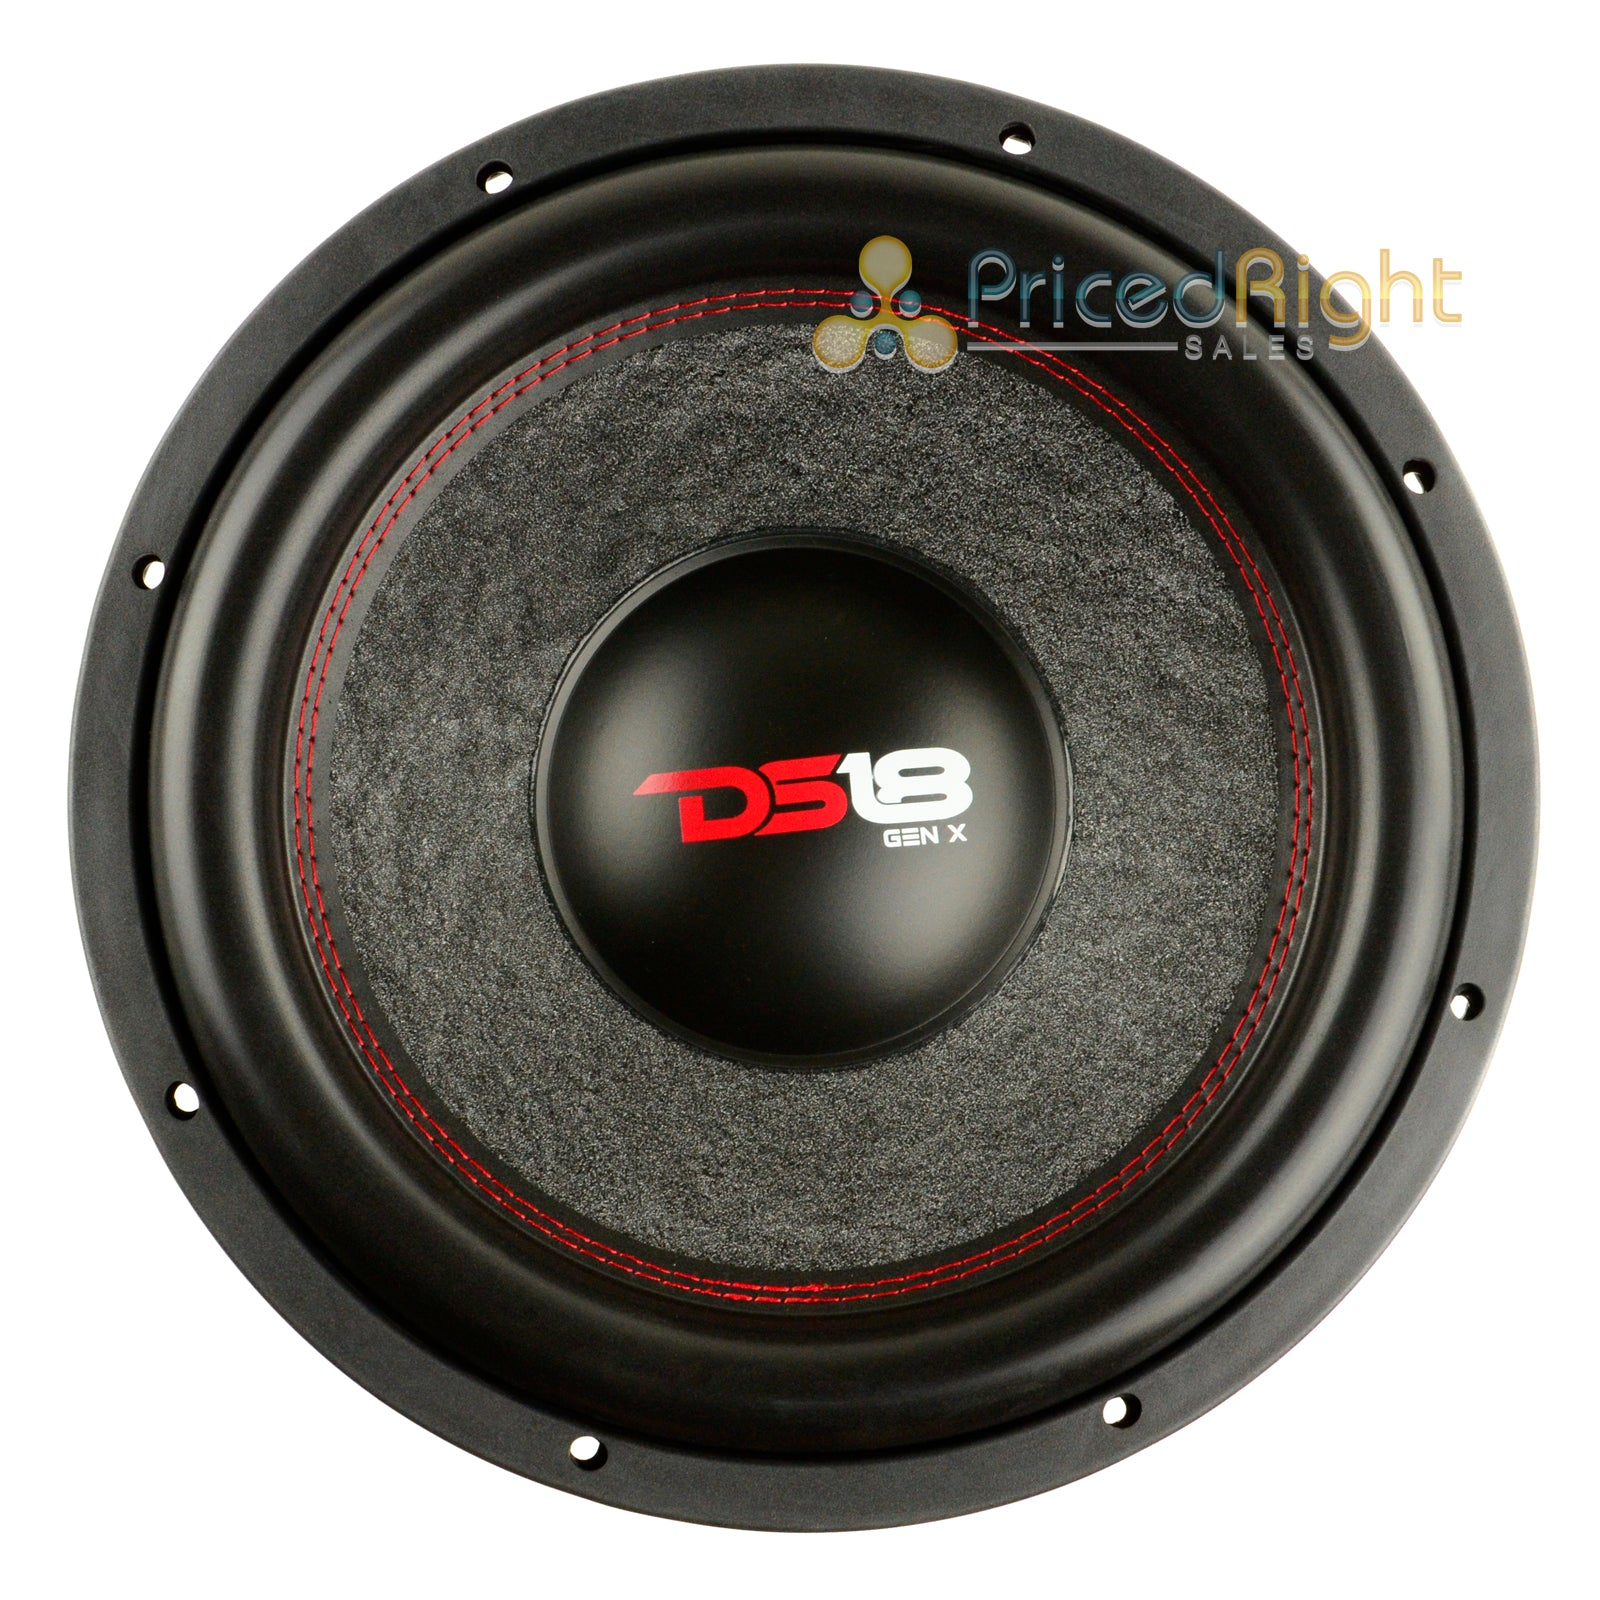 "1 DS18 GEN-X124D 12"" Inch Subwoofer 900 W Max Dual 4 Ohm Bass Sub Woofer Speaker"